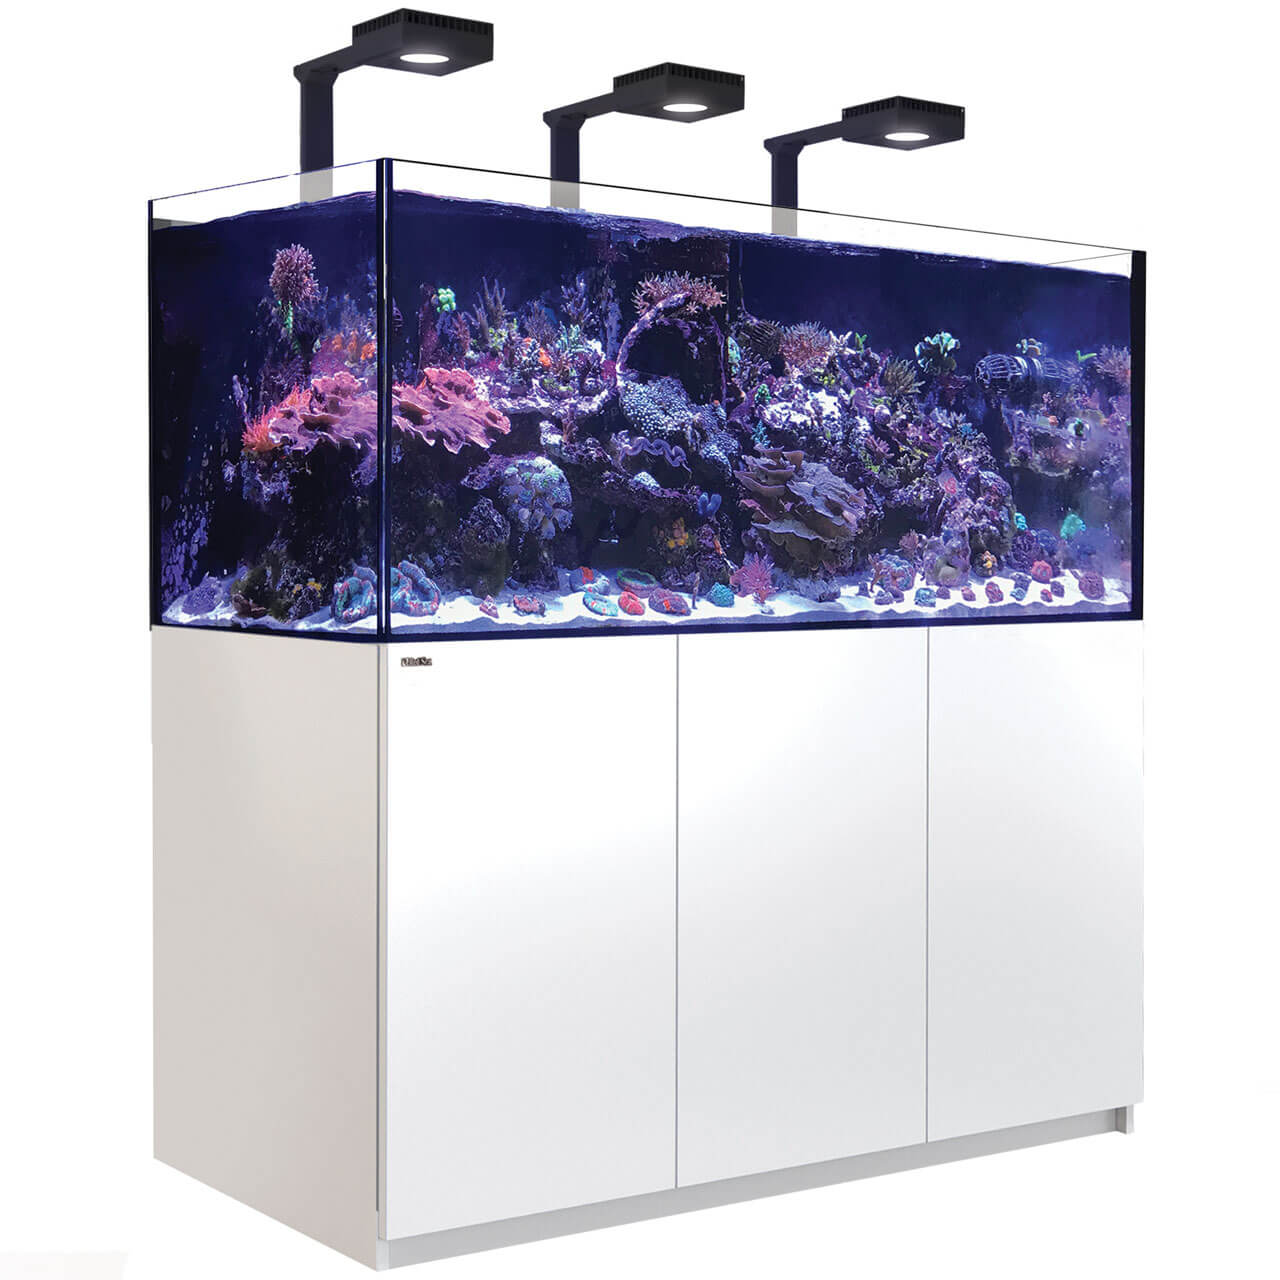 Reefer Deluxe XL 625